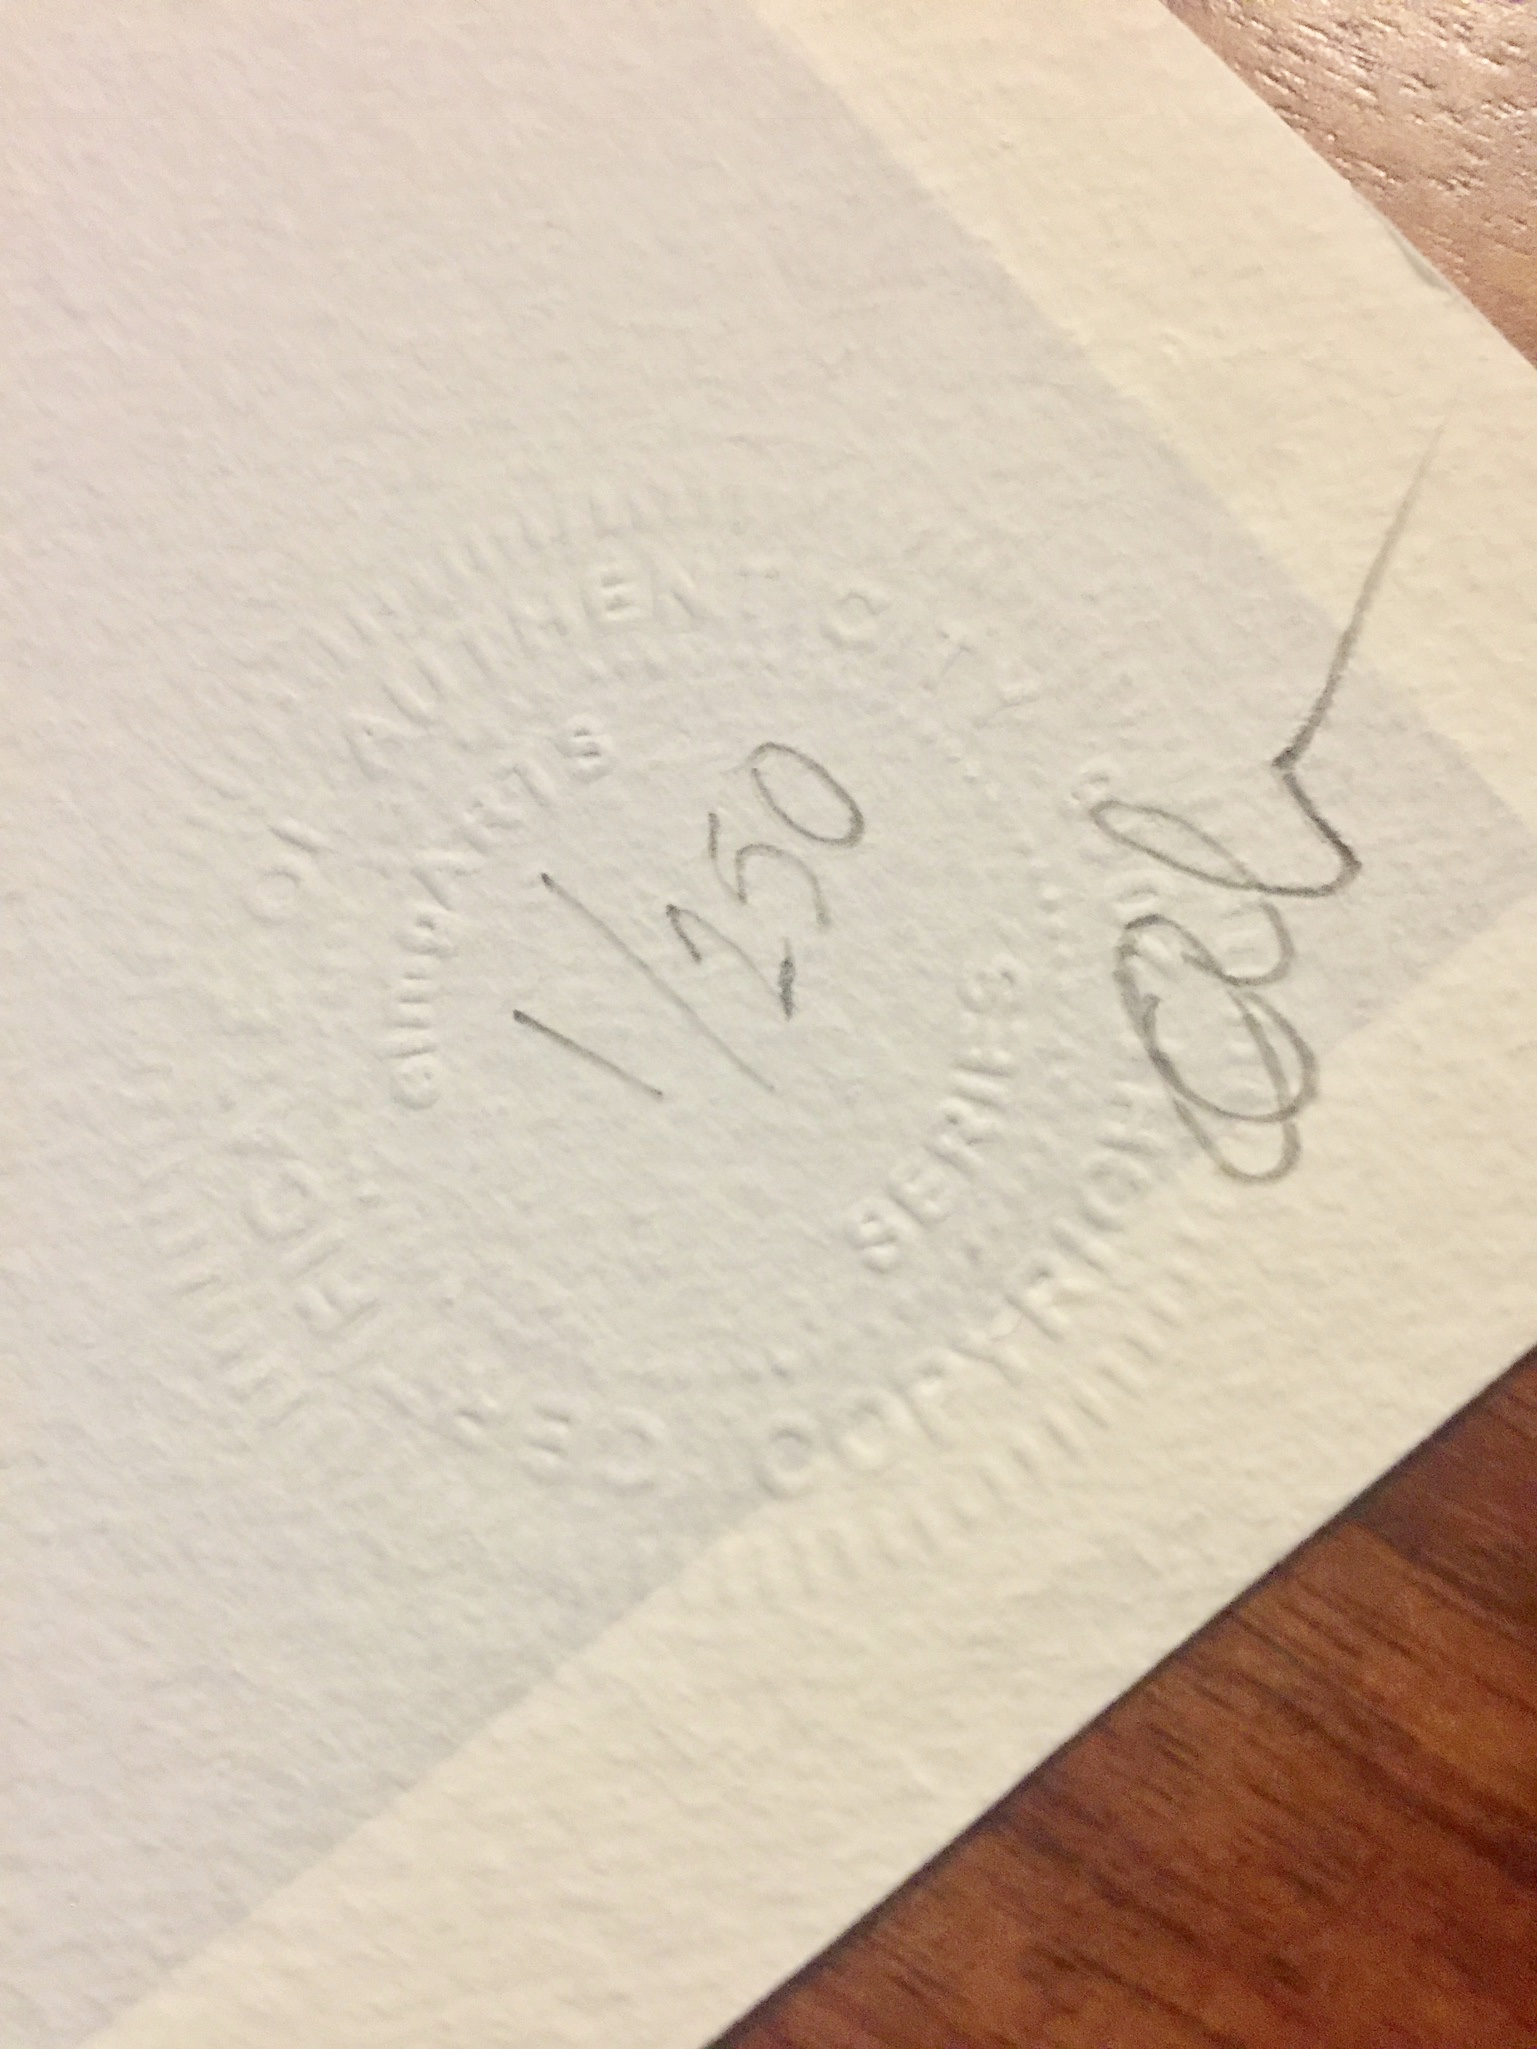 Copy of Signed and Hand-Numbered